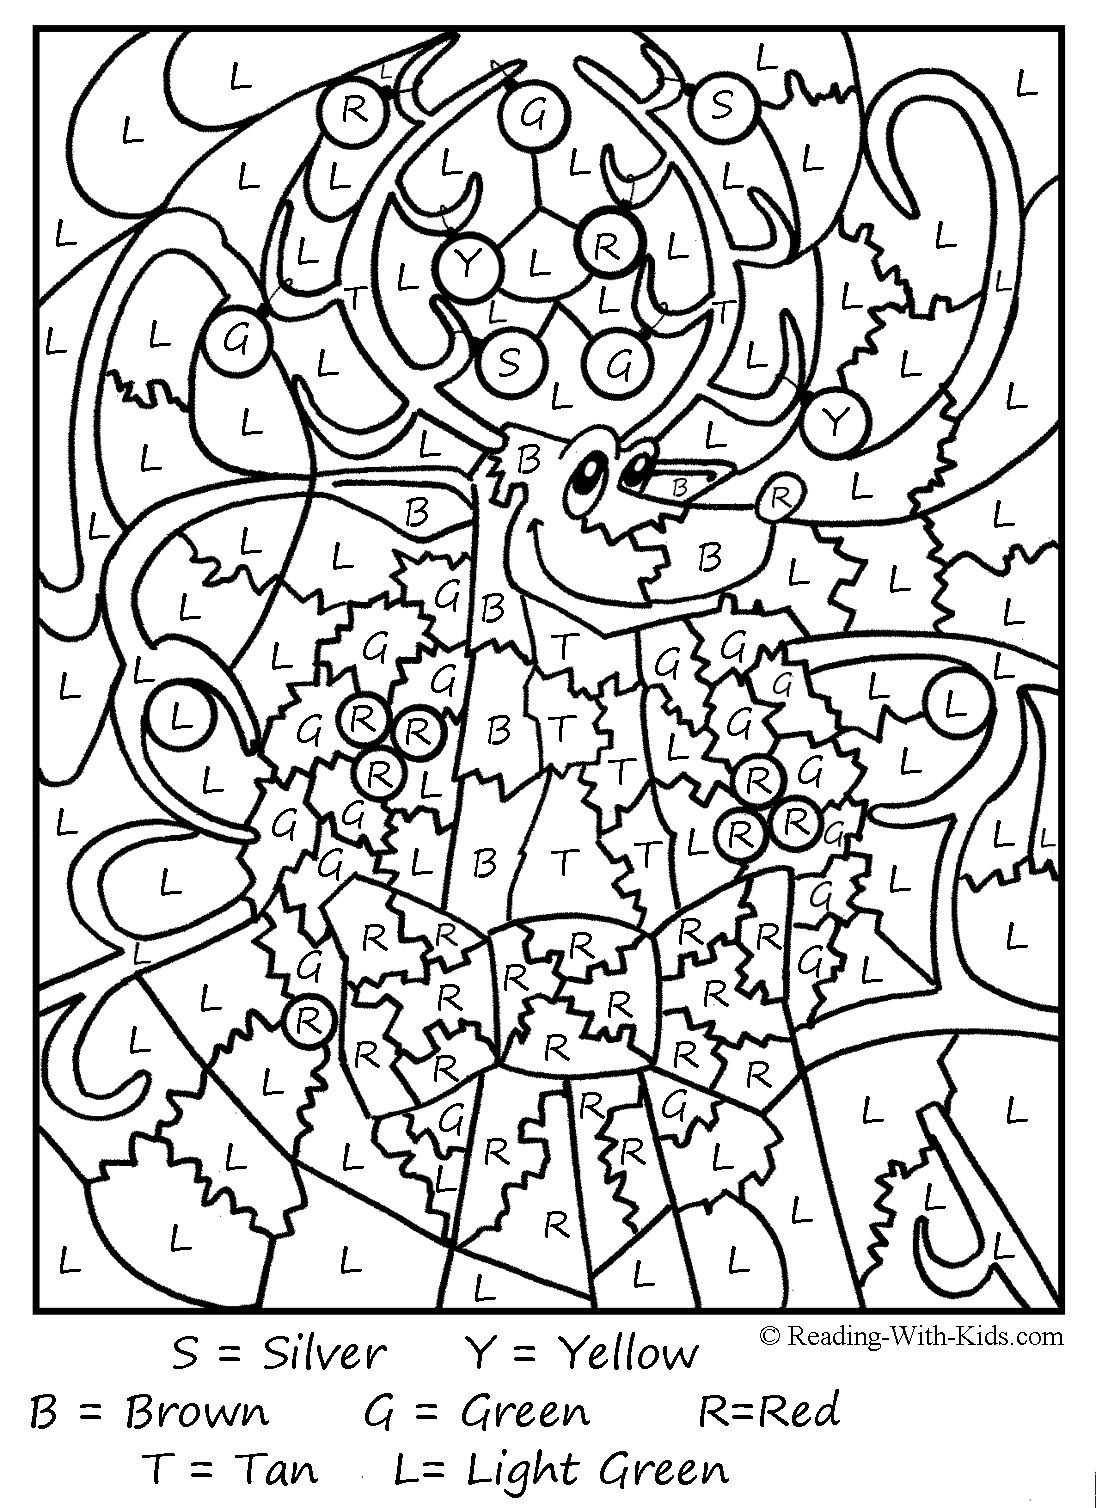 Christmas colouring in sheets printable - Color By Letter And Color By Number Coloring Pages Are Fun And